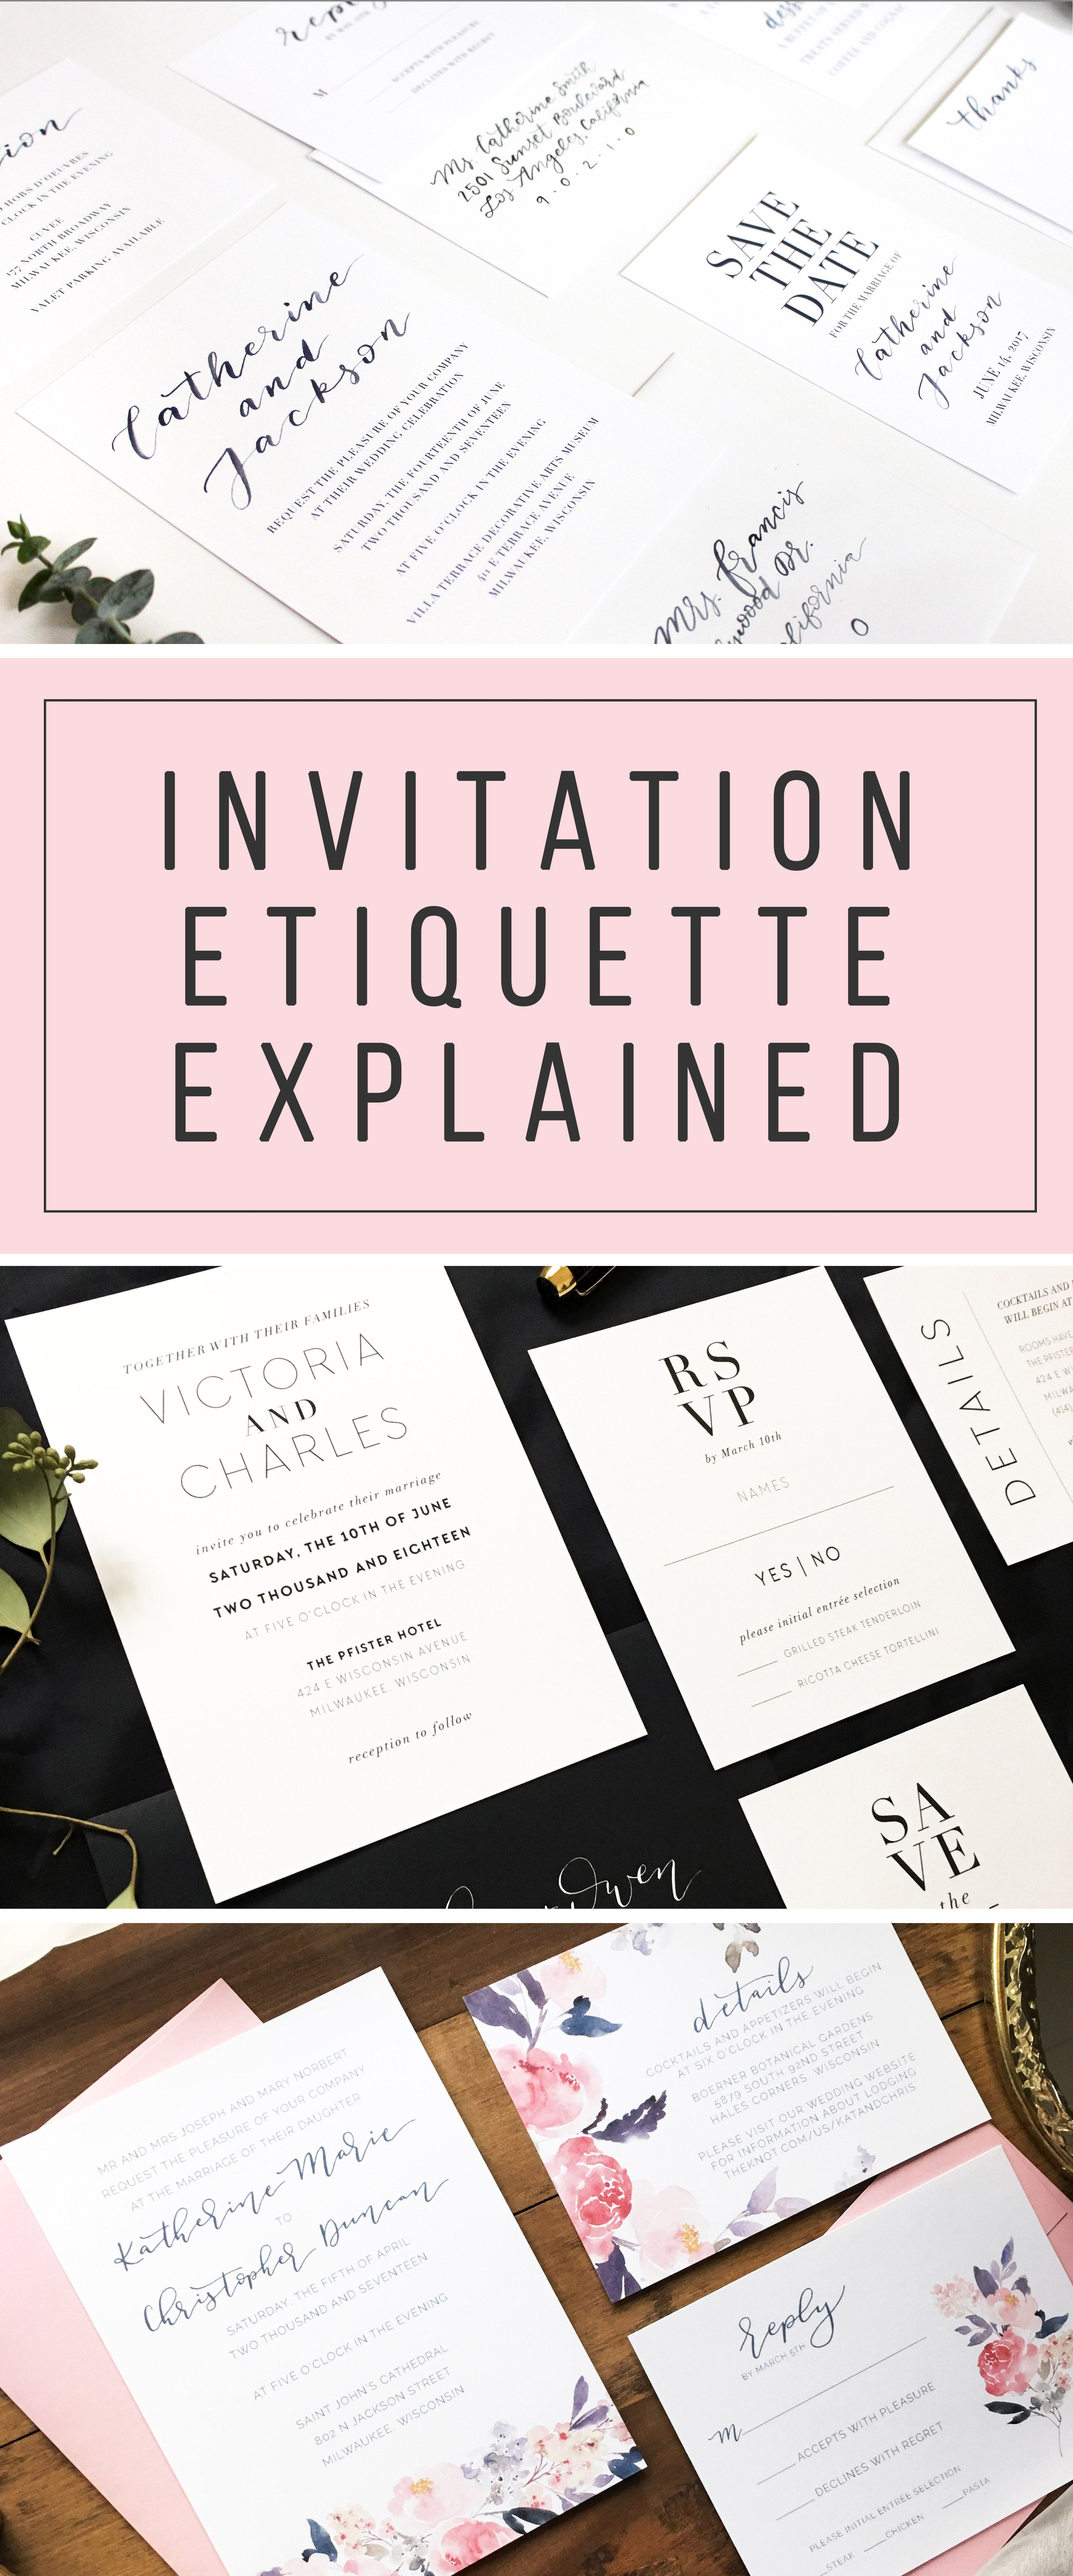 Invitation Etiquette Explained by Shelby Made It http